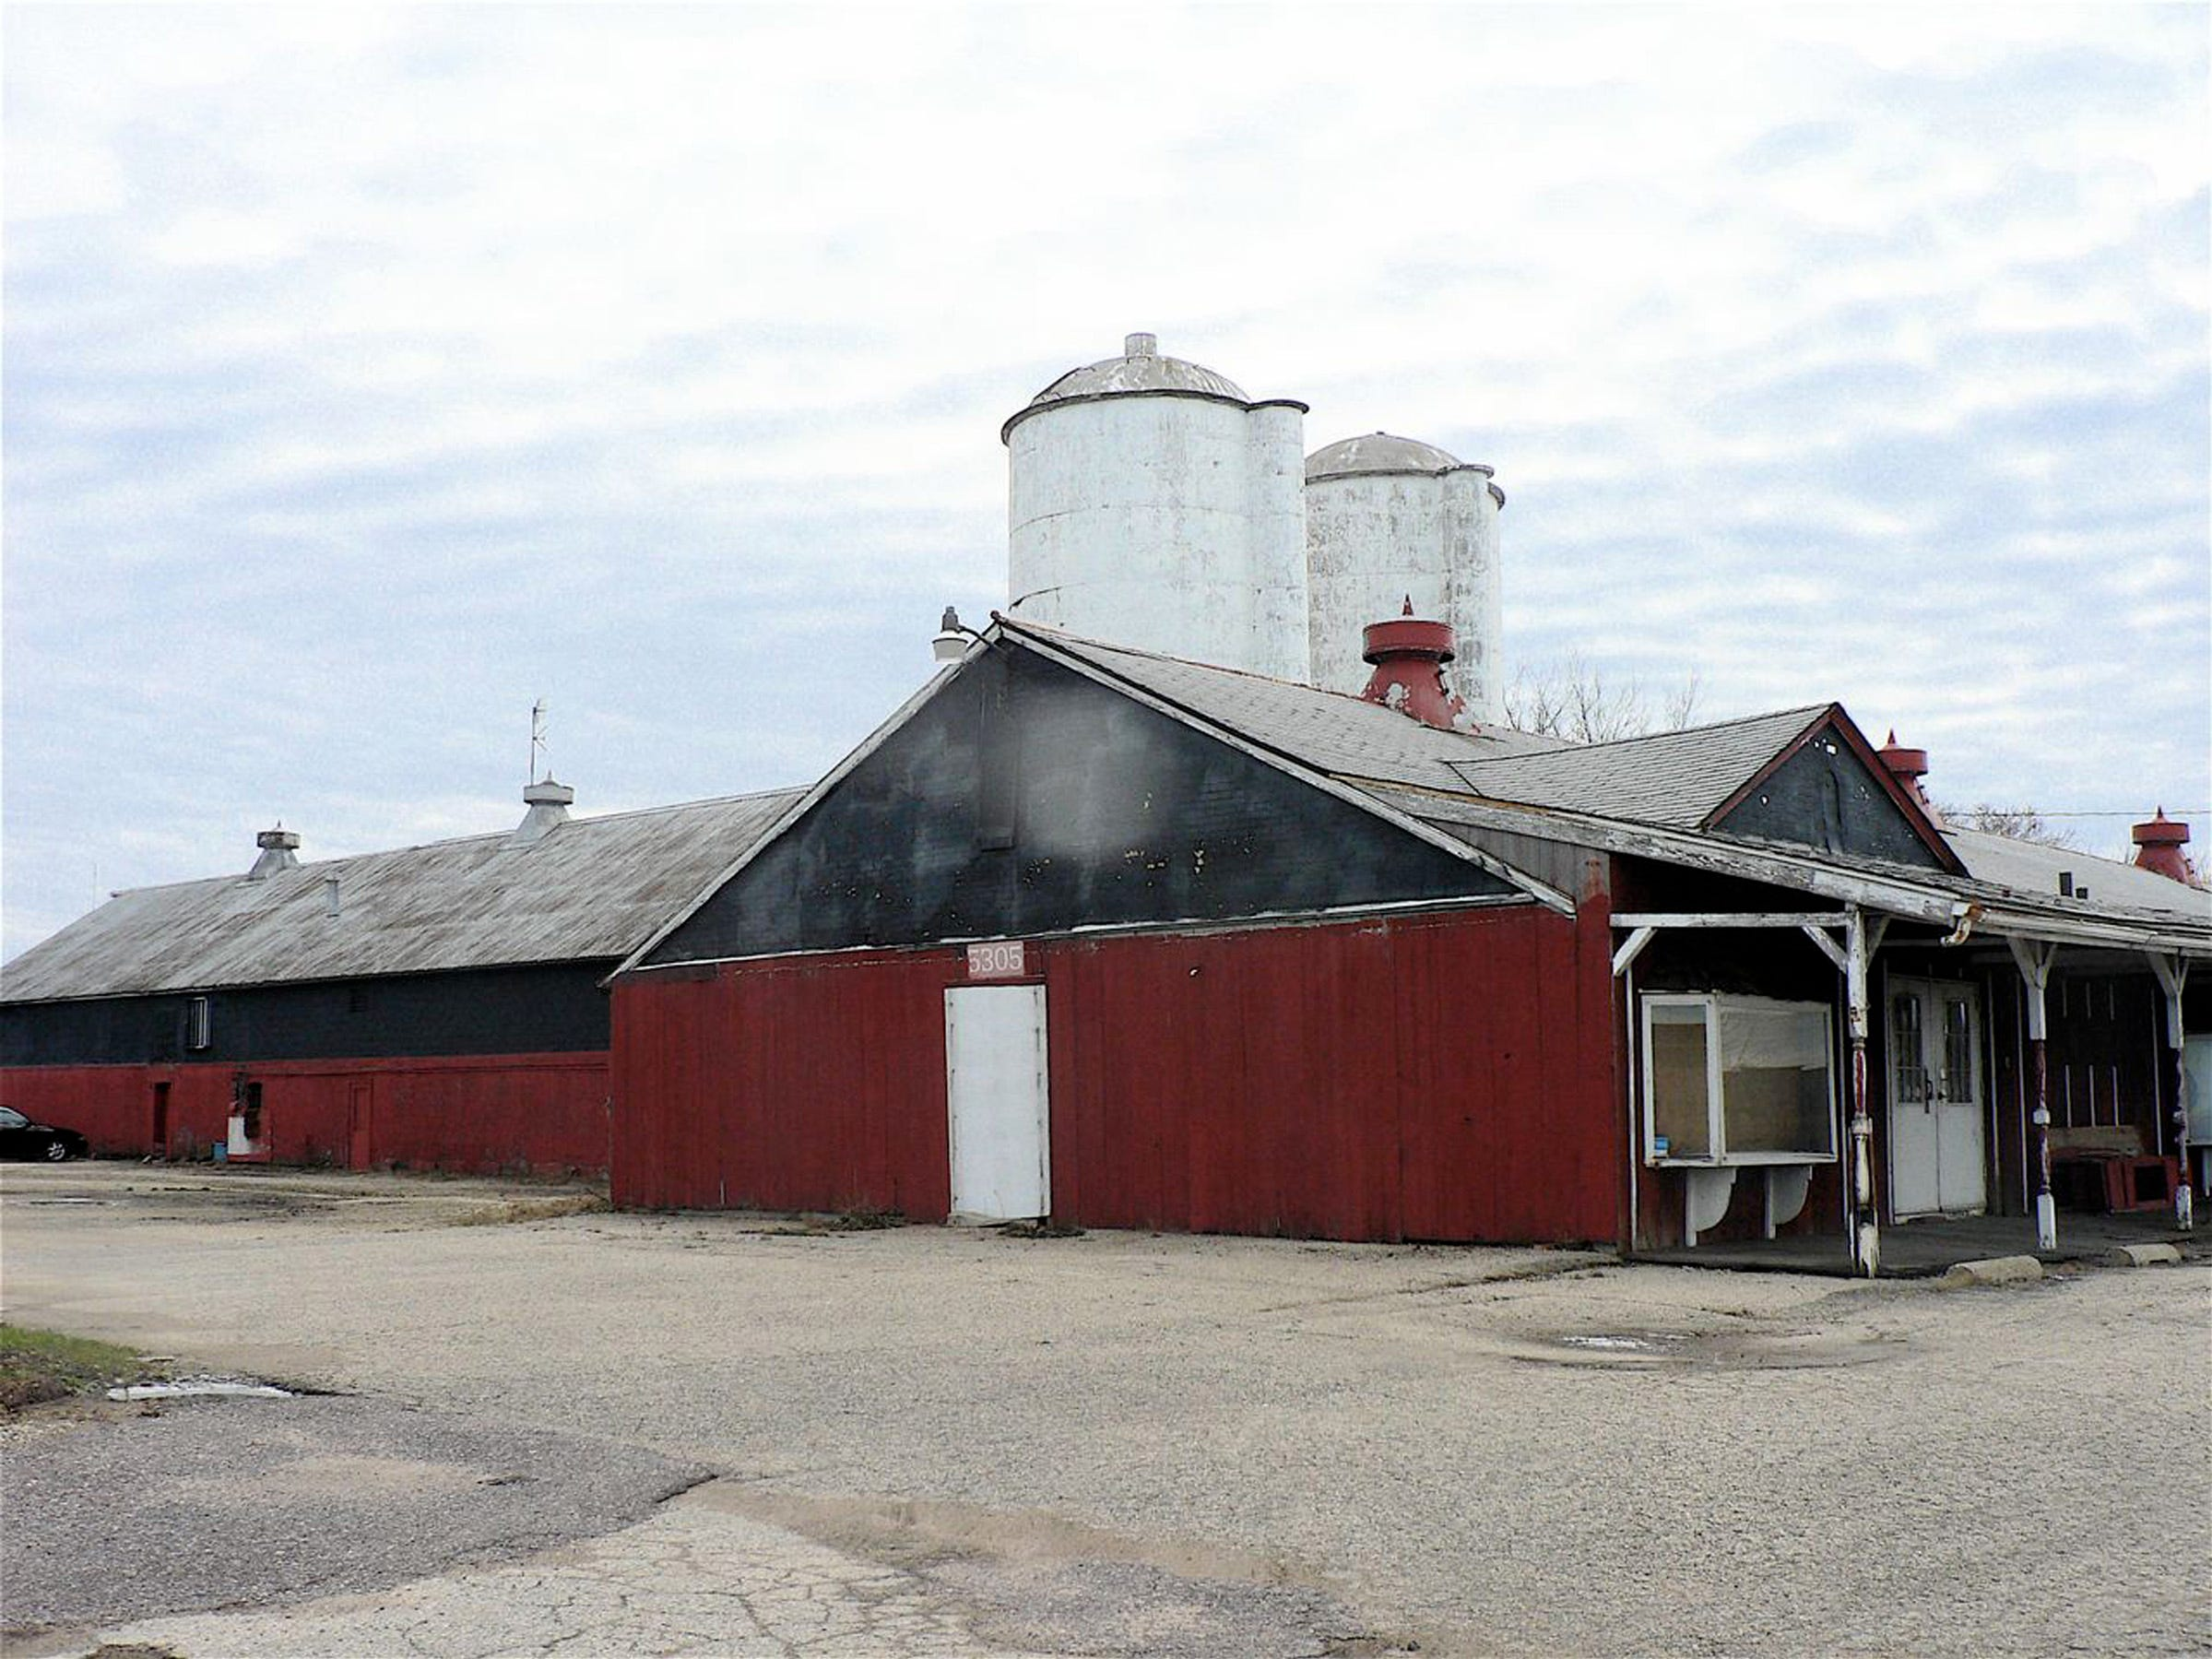 The Renebohm barn at Highway 151 and I 90-94 in Madison, that once provided milk for the chain of drugstores and later was a cheese store was recently demolished.